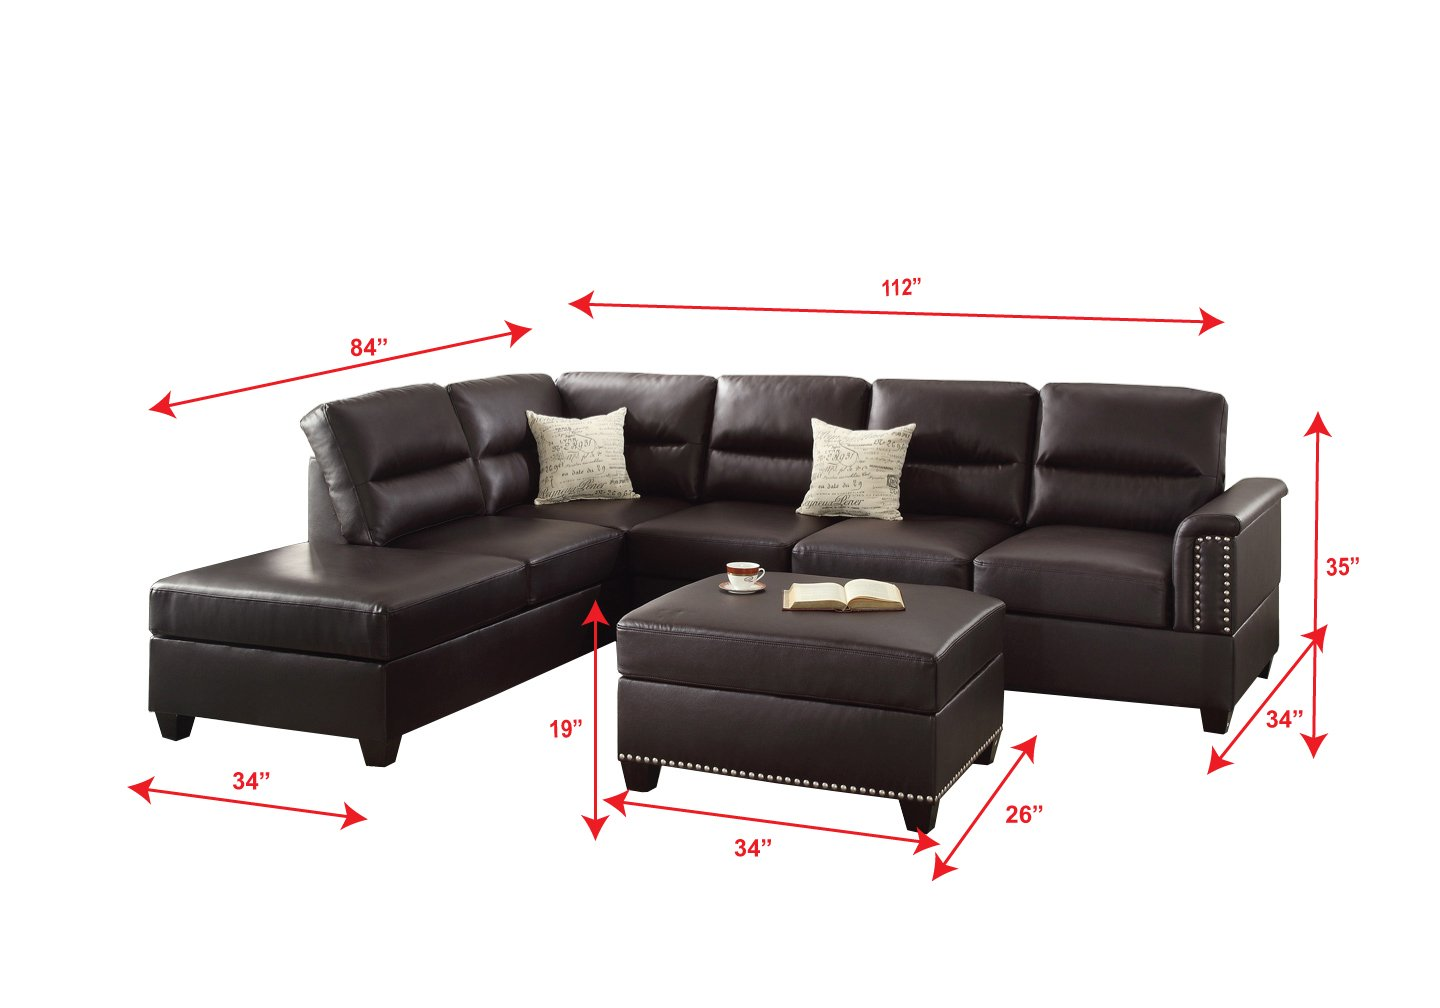 Poundex f7609 bobkona toffy bonded leather left or right hand chaise sectional with ottoman set espresso